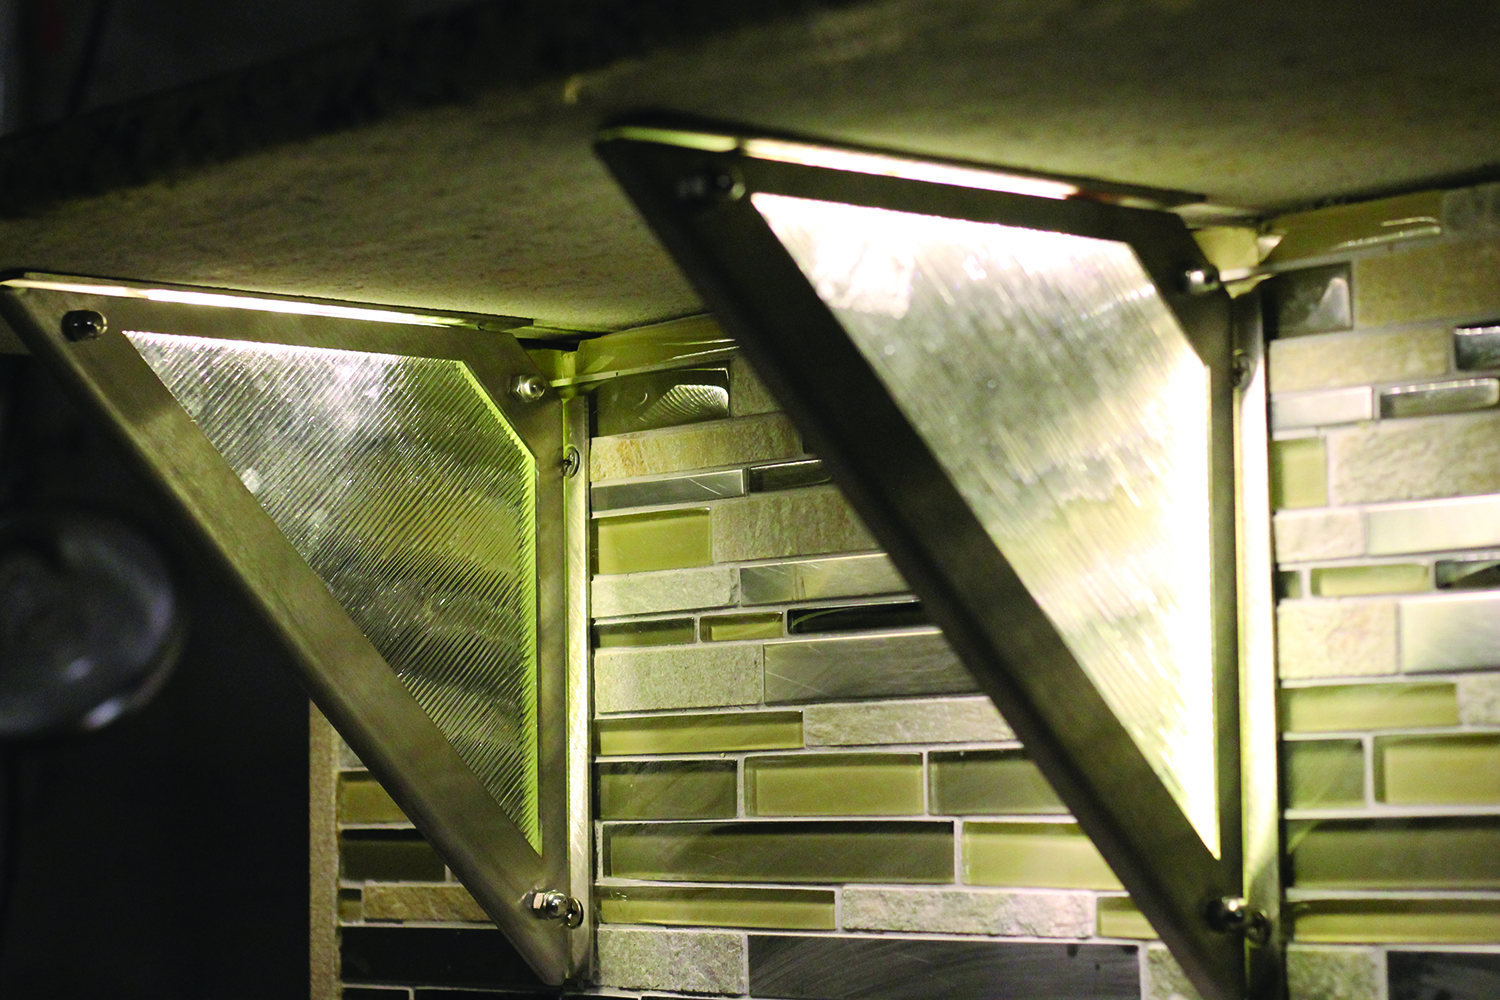 Learn about LED Lighting and how we incorporated it into our countertop supports